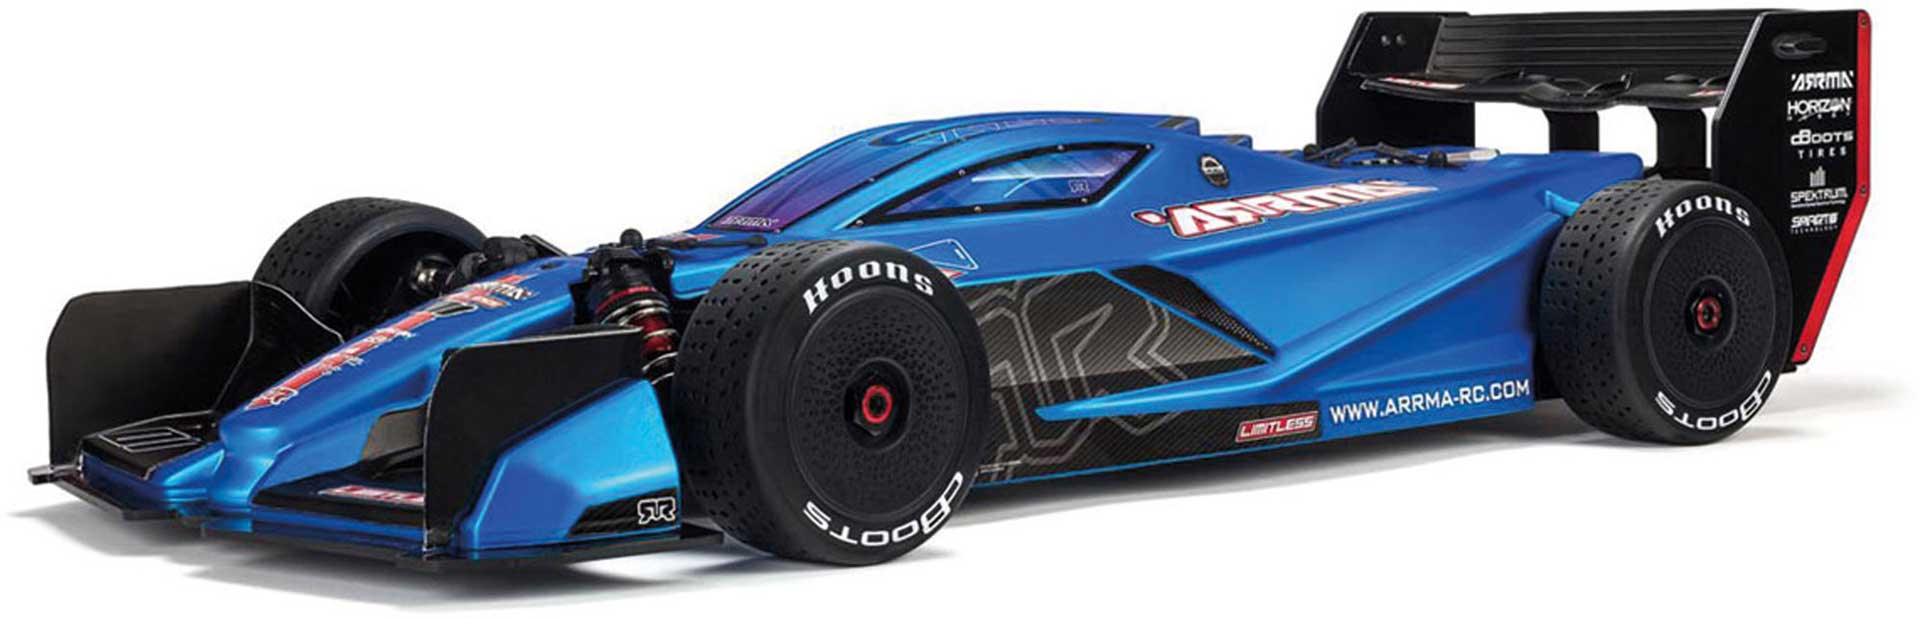 Arrma LIMITLESS Speed Bash 1/7th Scale All-Road Spd Mach